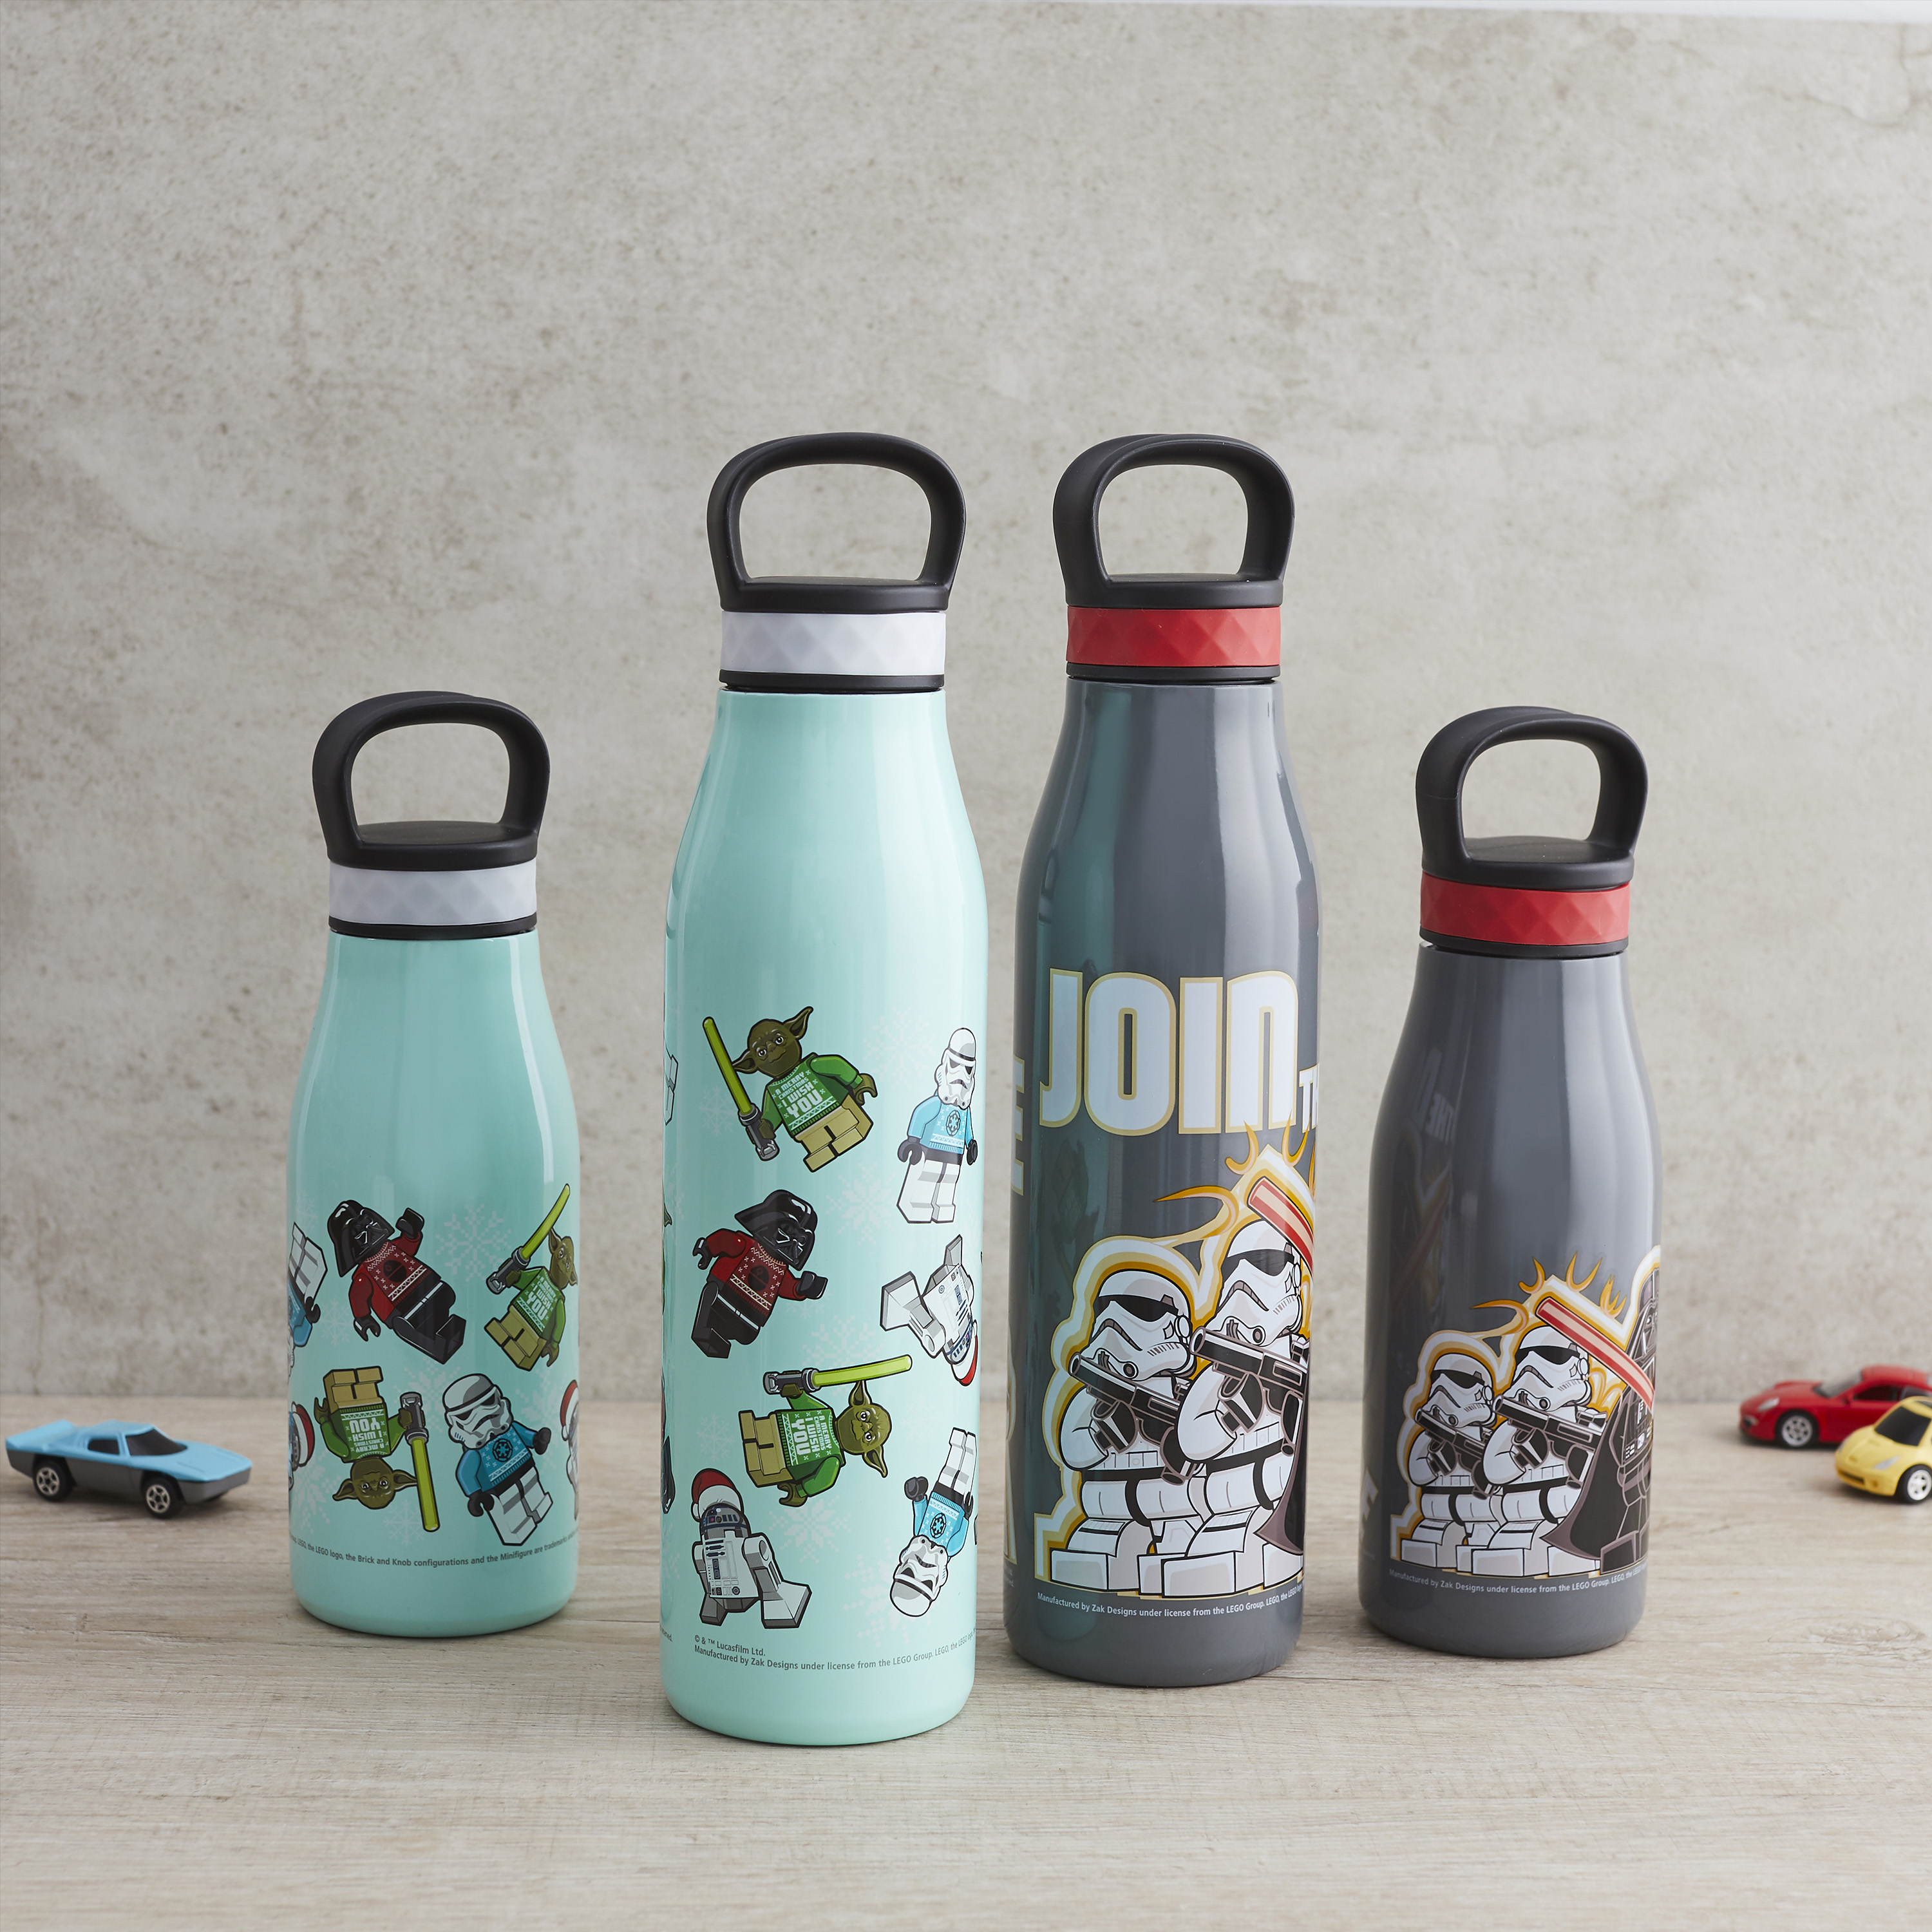 Lego Star Wars 12 ounce Stainless Steel Vacuum Insulated Water Bottle, Darth Vader, Stormtroopers and Yoda slideshow image 3